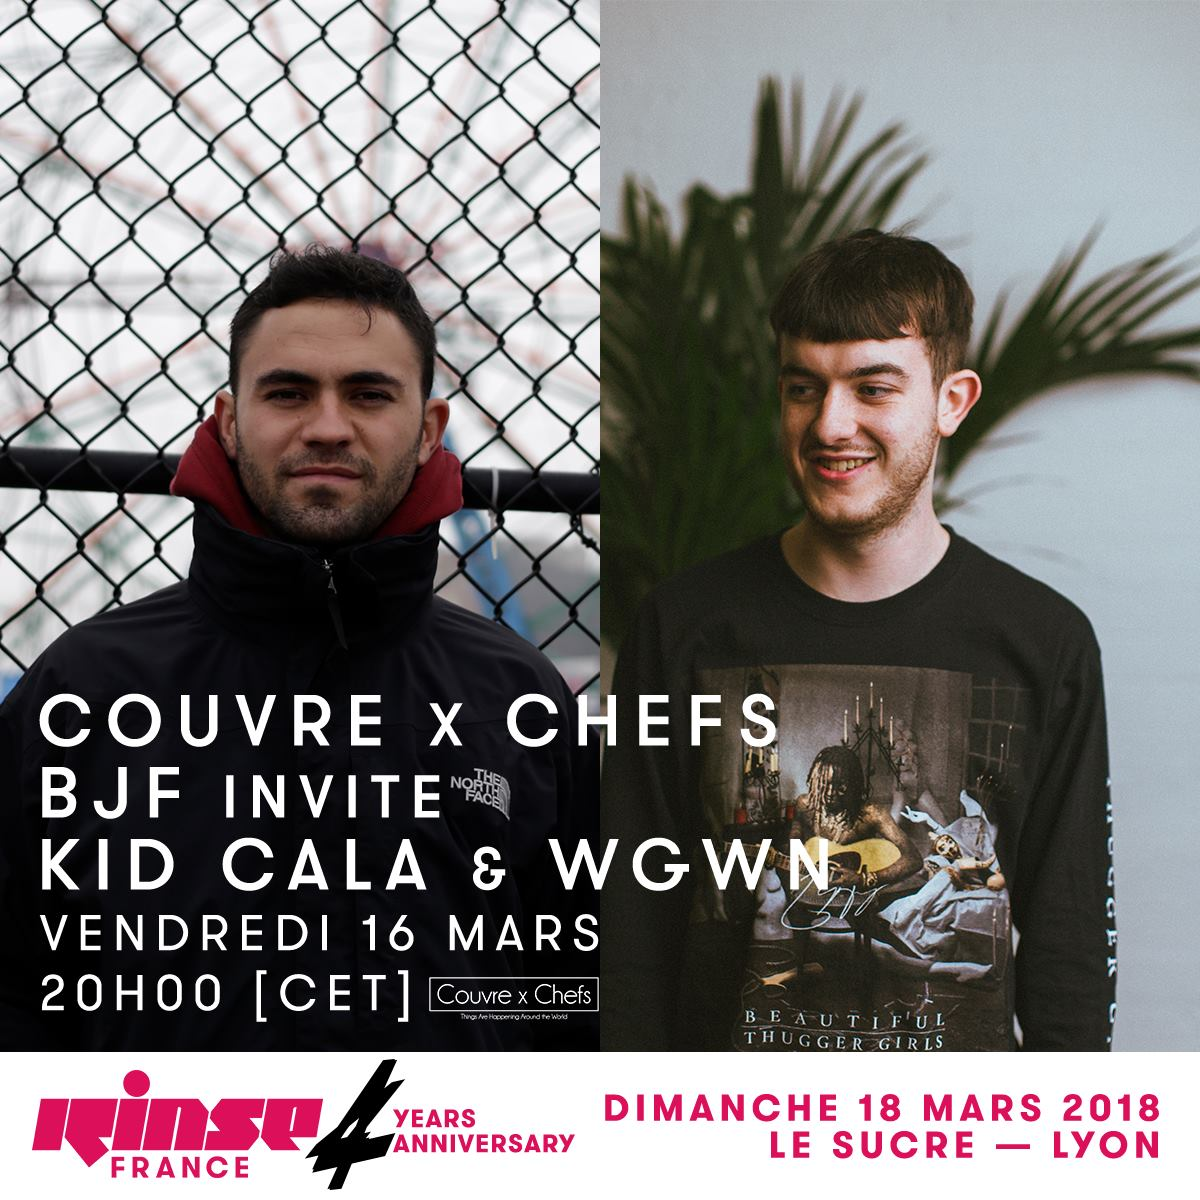 couvre-x-chefs-kid-cala-wgwn-rinse